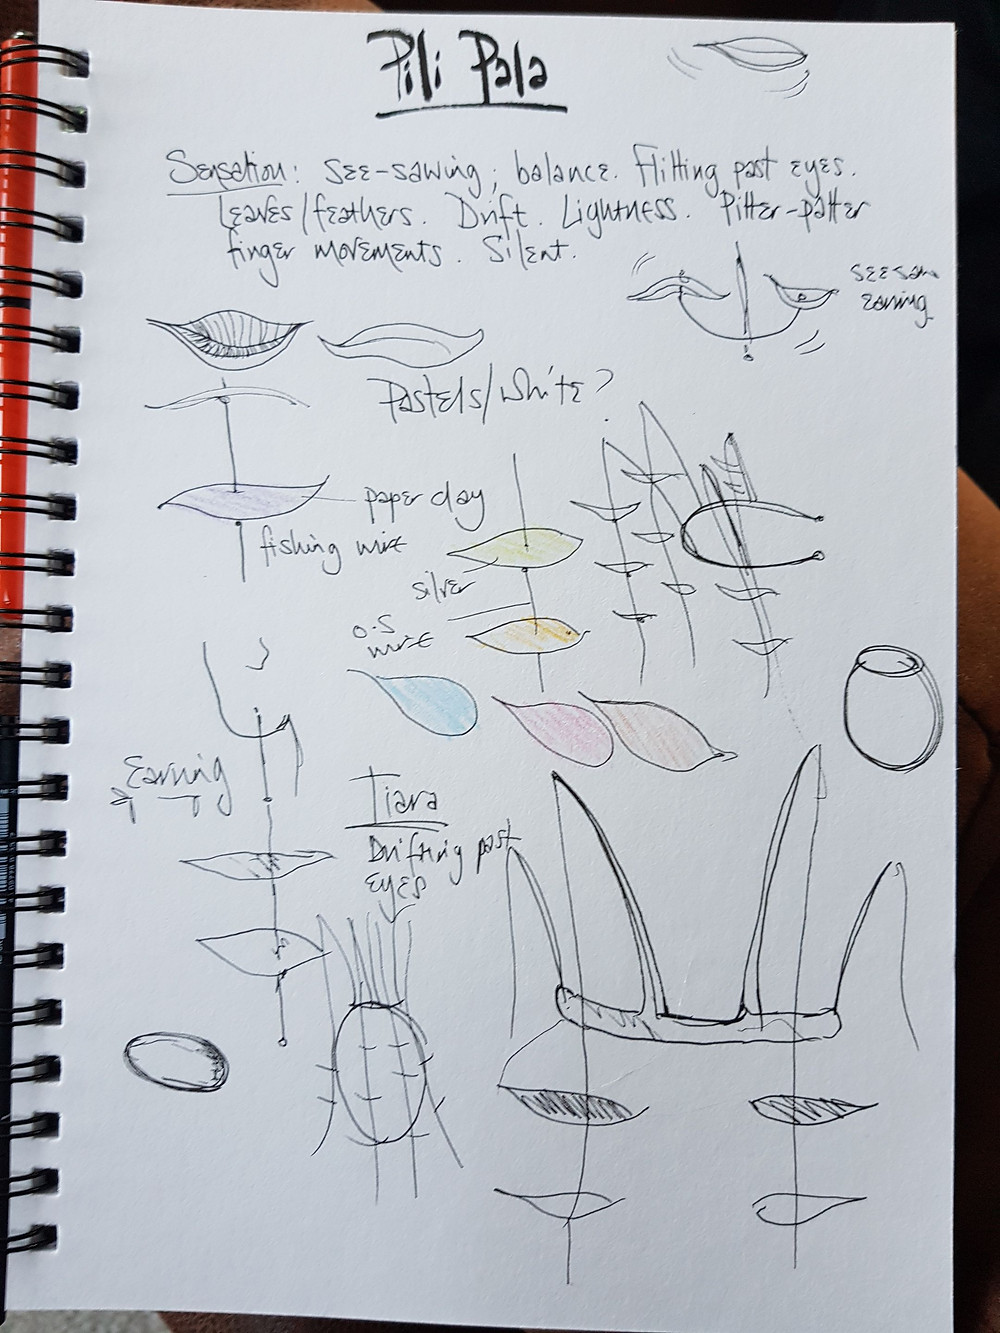 initial response and sketches to the word 'pili-pala'